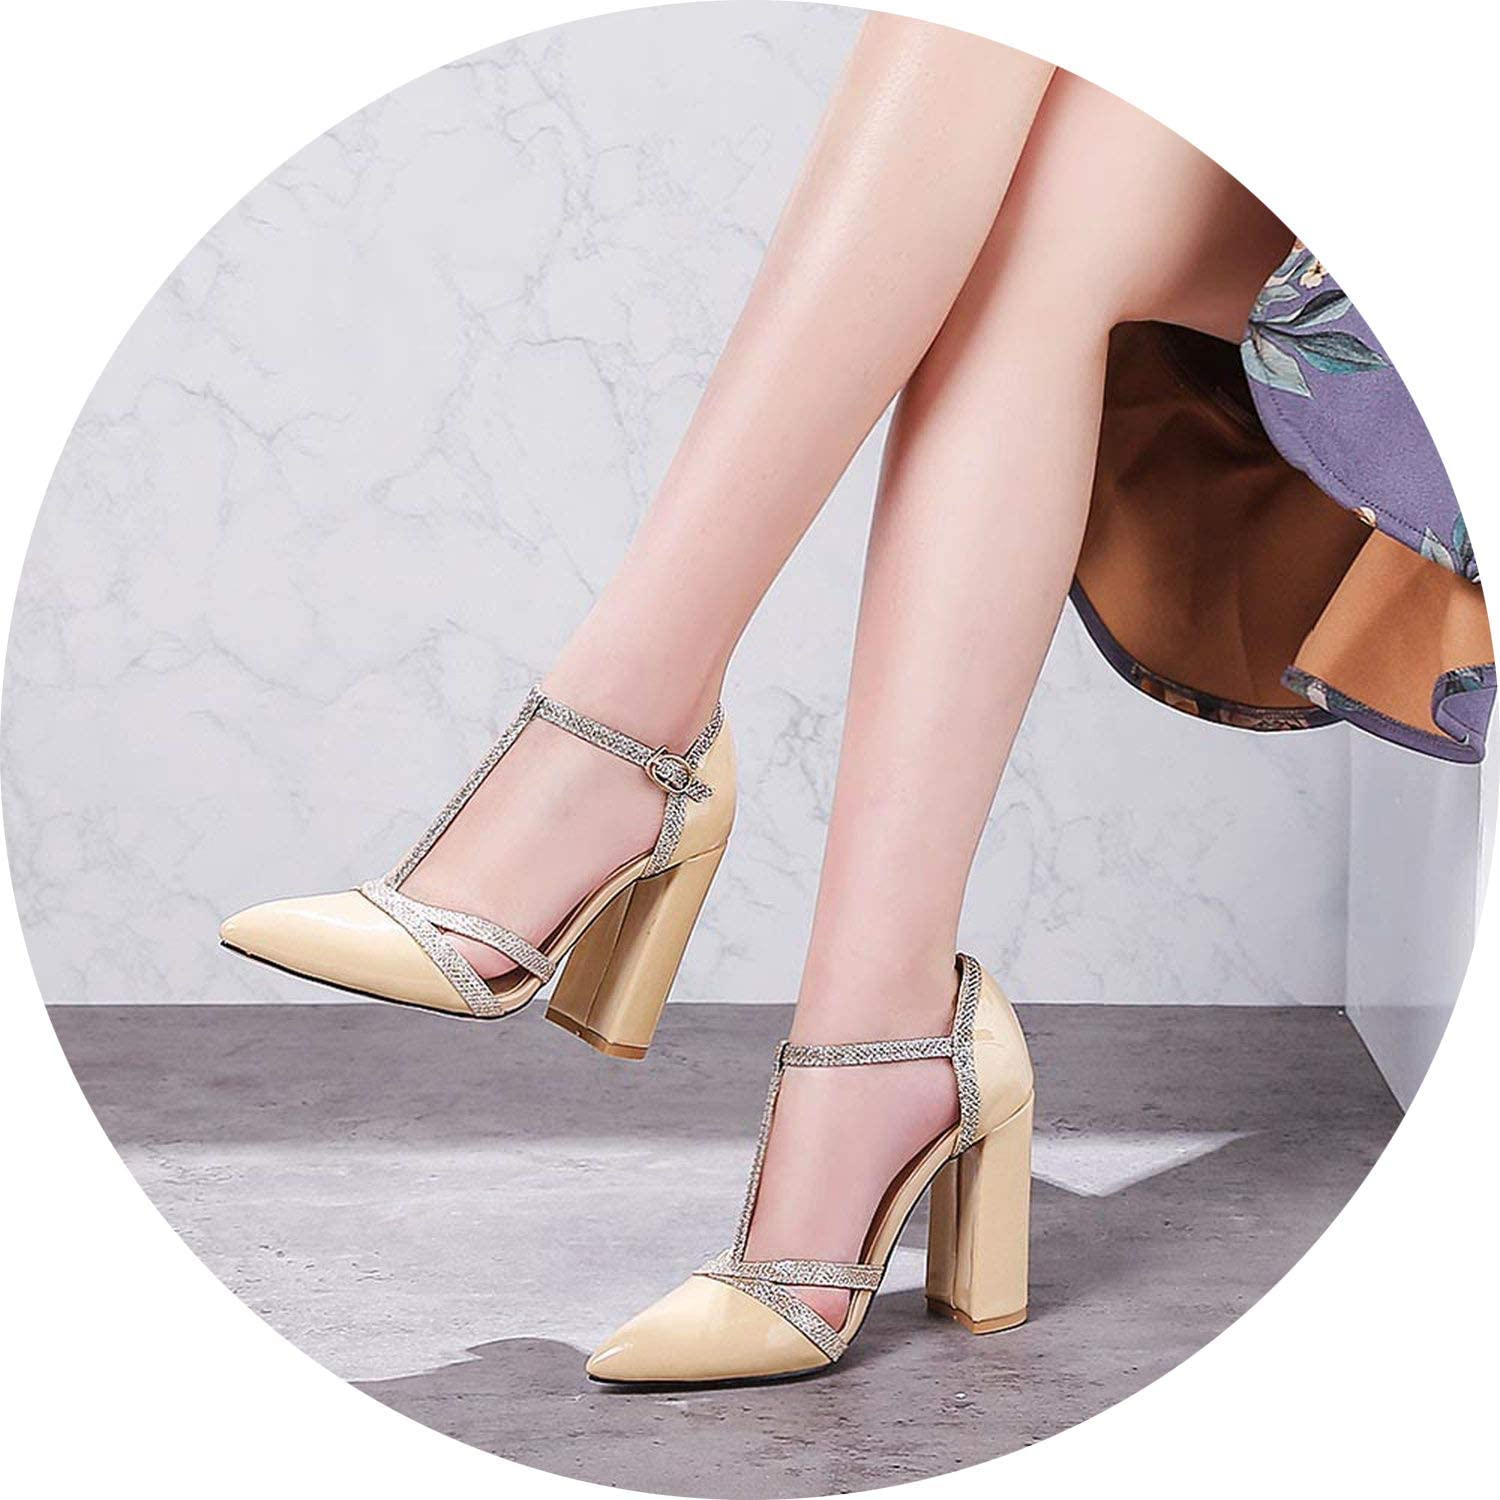 FINDYOU Patent Leather Women Pumps Spring shoes T-Strap Pointed Wedding Pumps Sexy Cut Outs Thick Heel Dress Party shoes